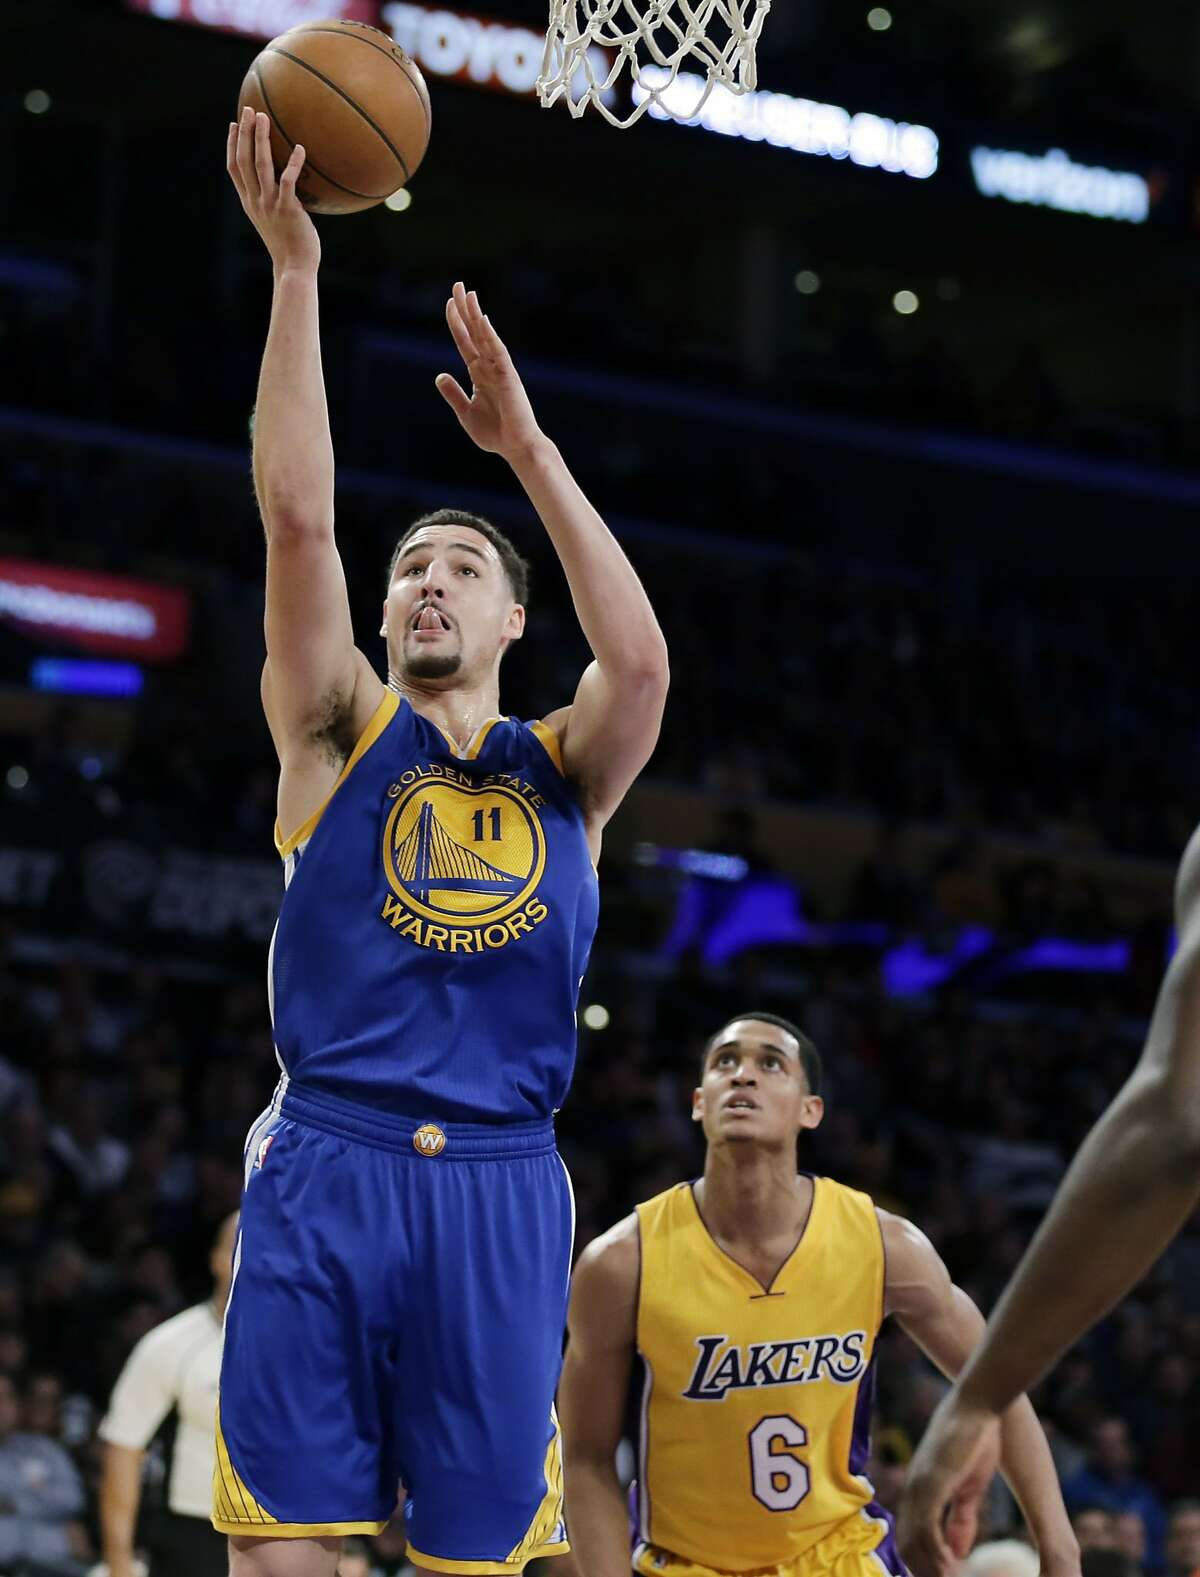 Golden State Warriors guard Klay Thompson, left, shoots as Los Angeles Lakers guard Jordan Clarkson watches during the first half of an NBA basketball game in Los Angeles, Tuesday, Jan. 5, 2016.